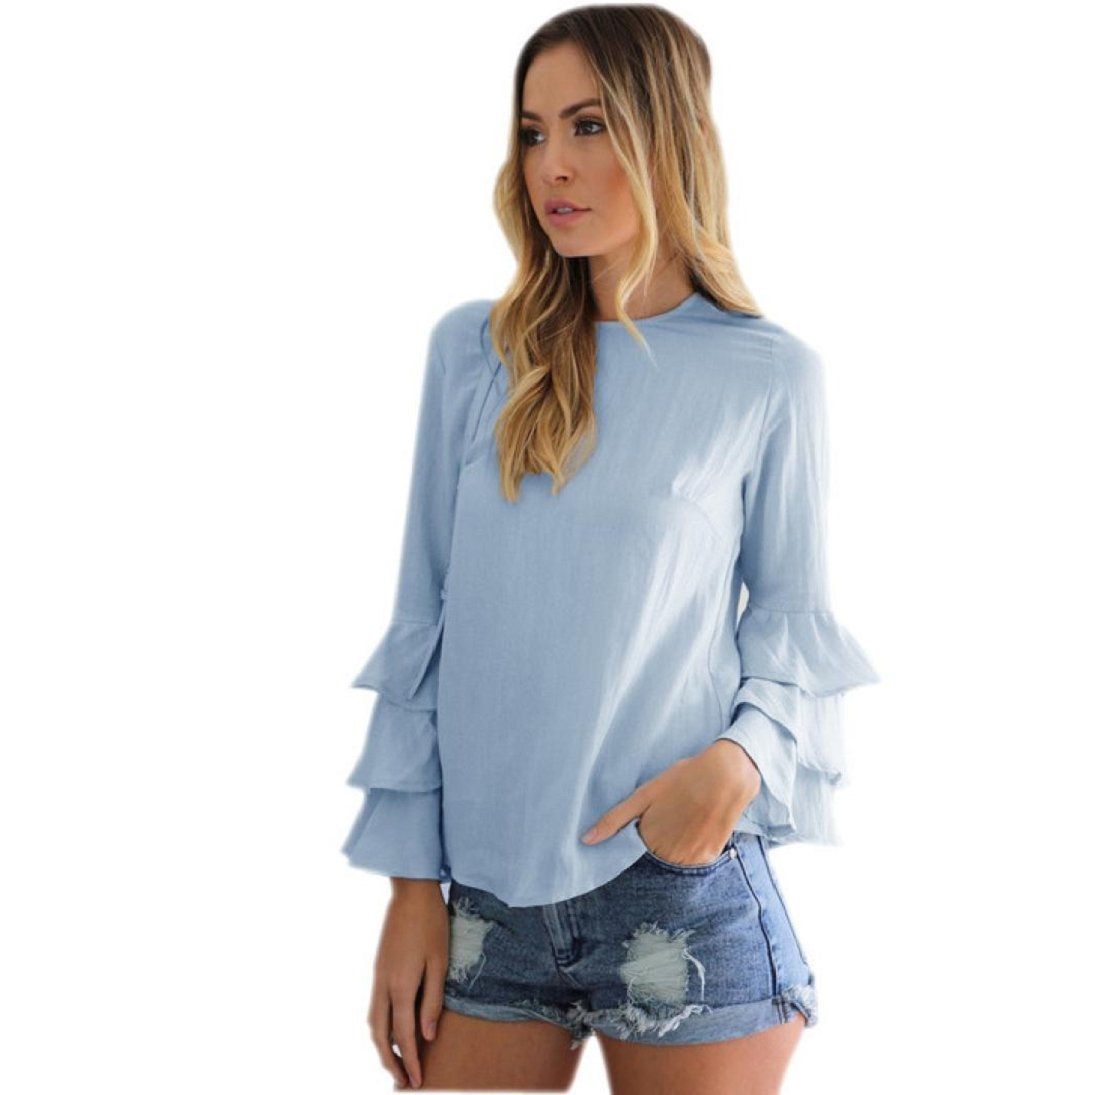 Fheaven Women Fashion Loose Casual Folding Sleeves Long Sleeve Blouse (XL, Blue)